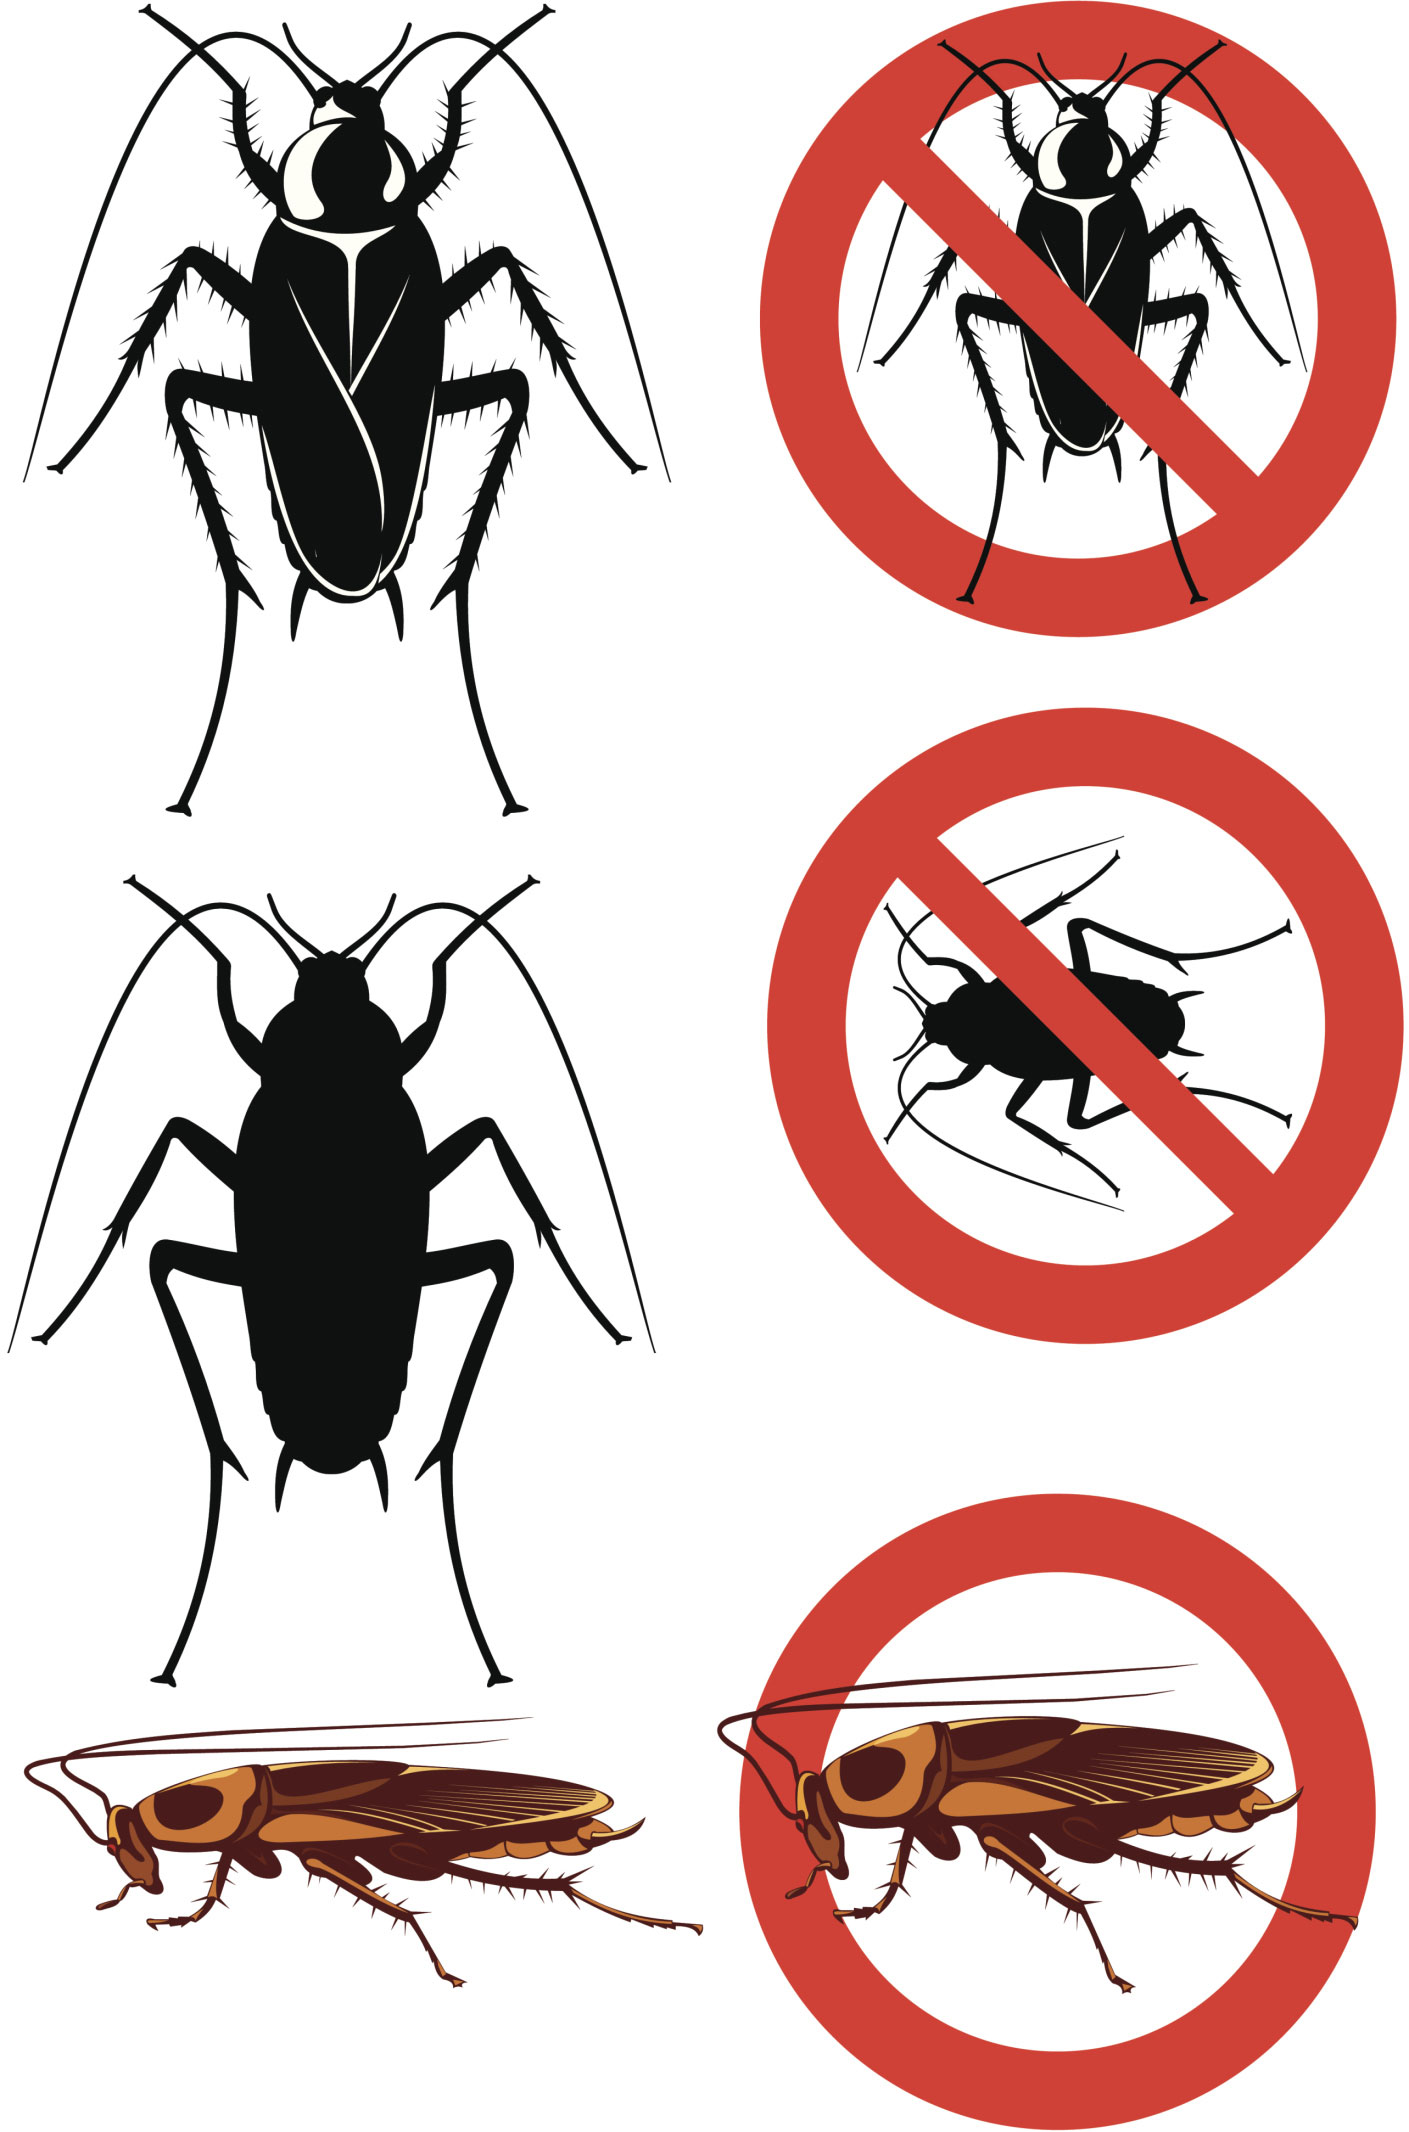 5 Ways to Get Rid of Cockroaches